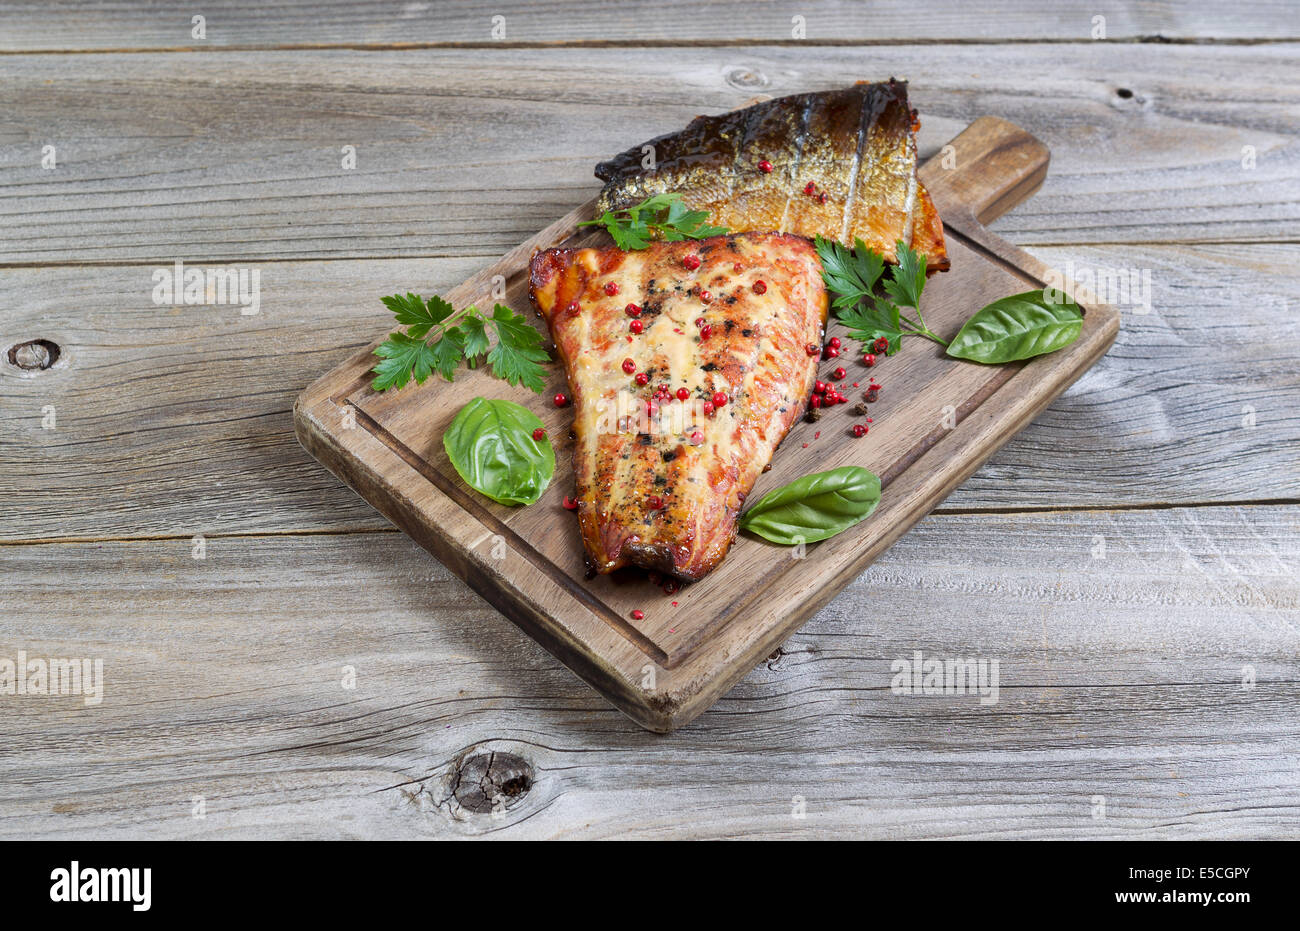 Horizontal view of smoked salmon fillets, fresh out of cooker, with seasoning on serving board with rustic wood - Stock Image